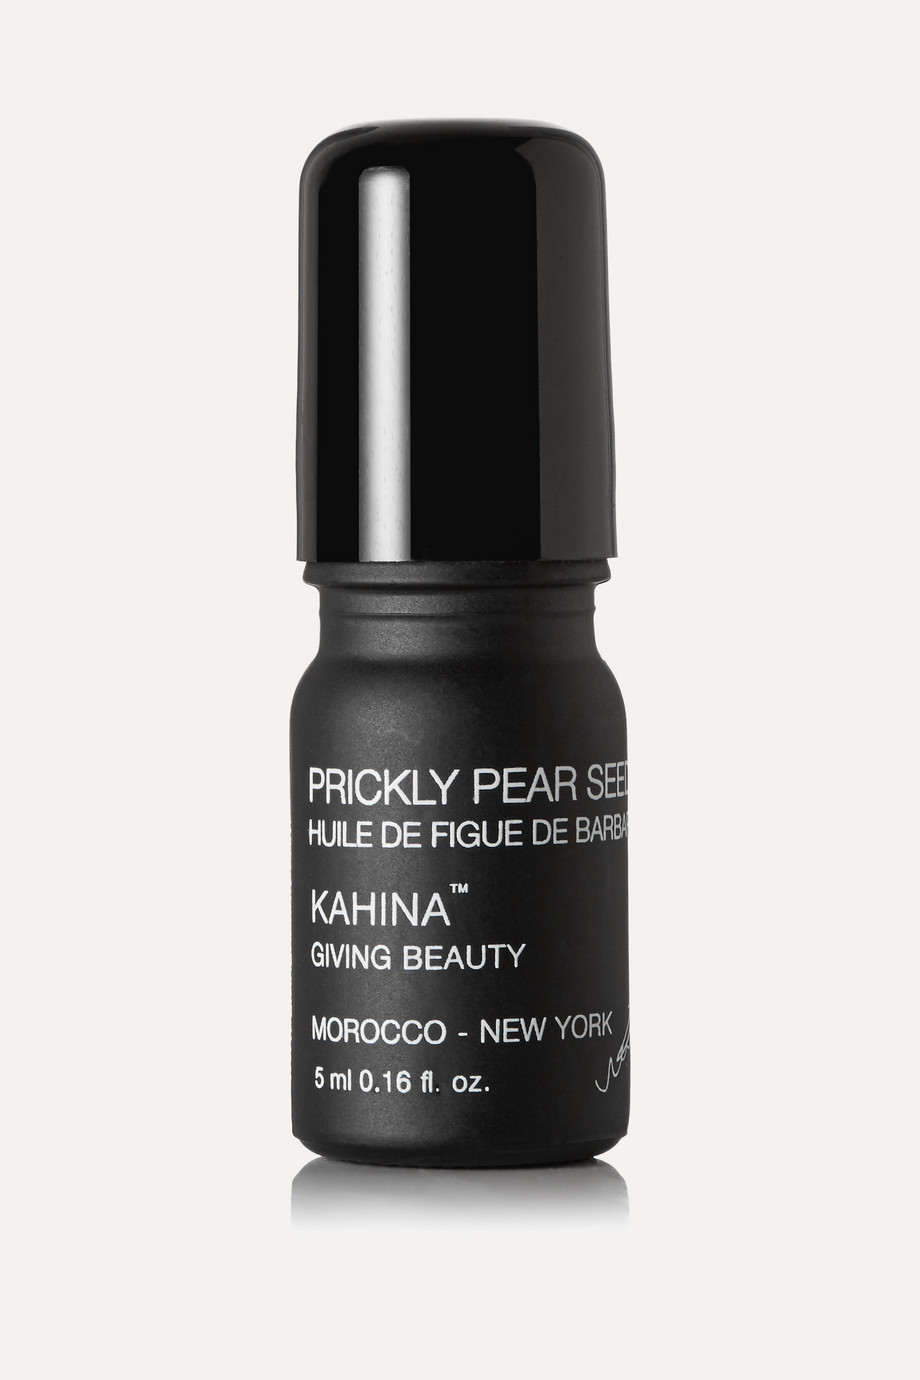 Kahina Giving Beauty + NET SUSTAIN Prickly Pear Seed Oil Roller Ball, 5ml